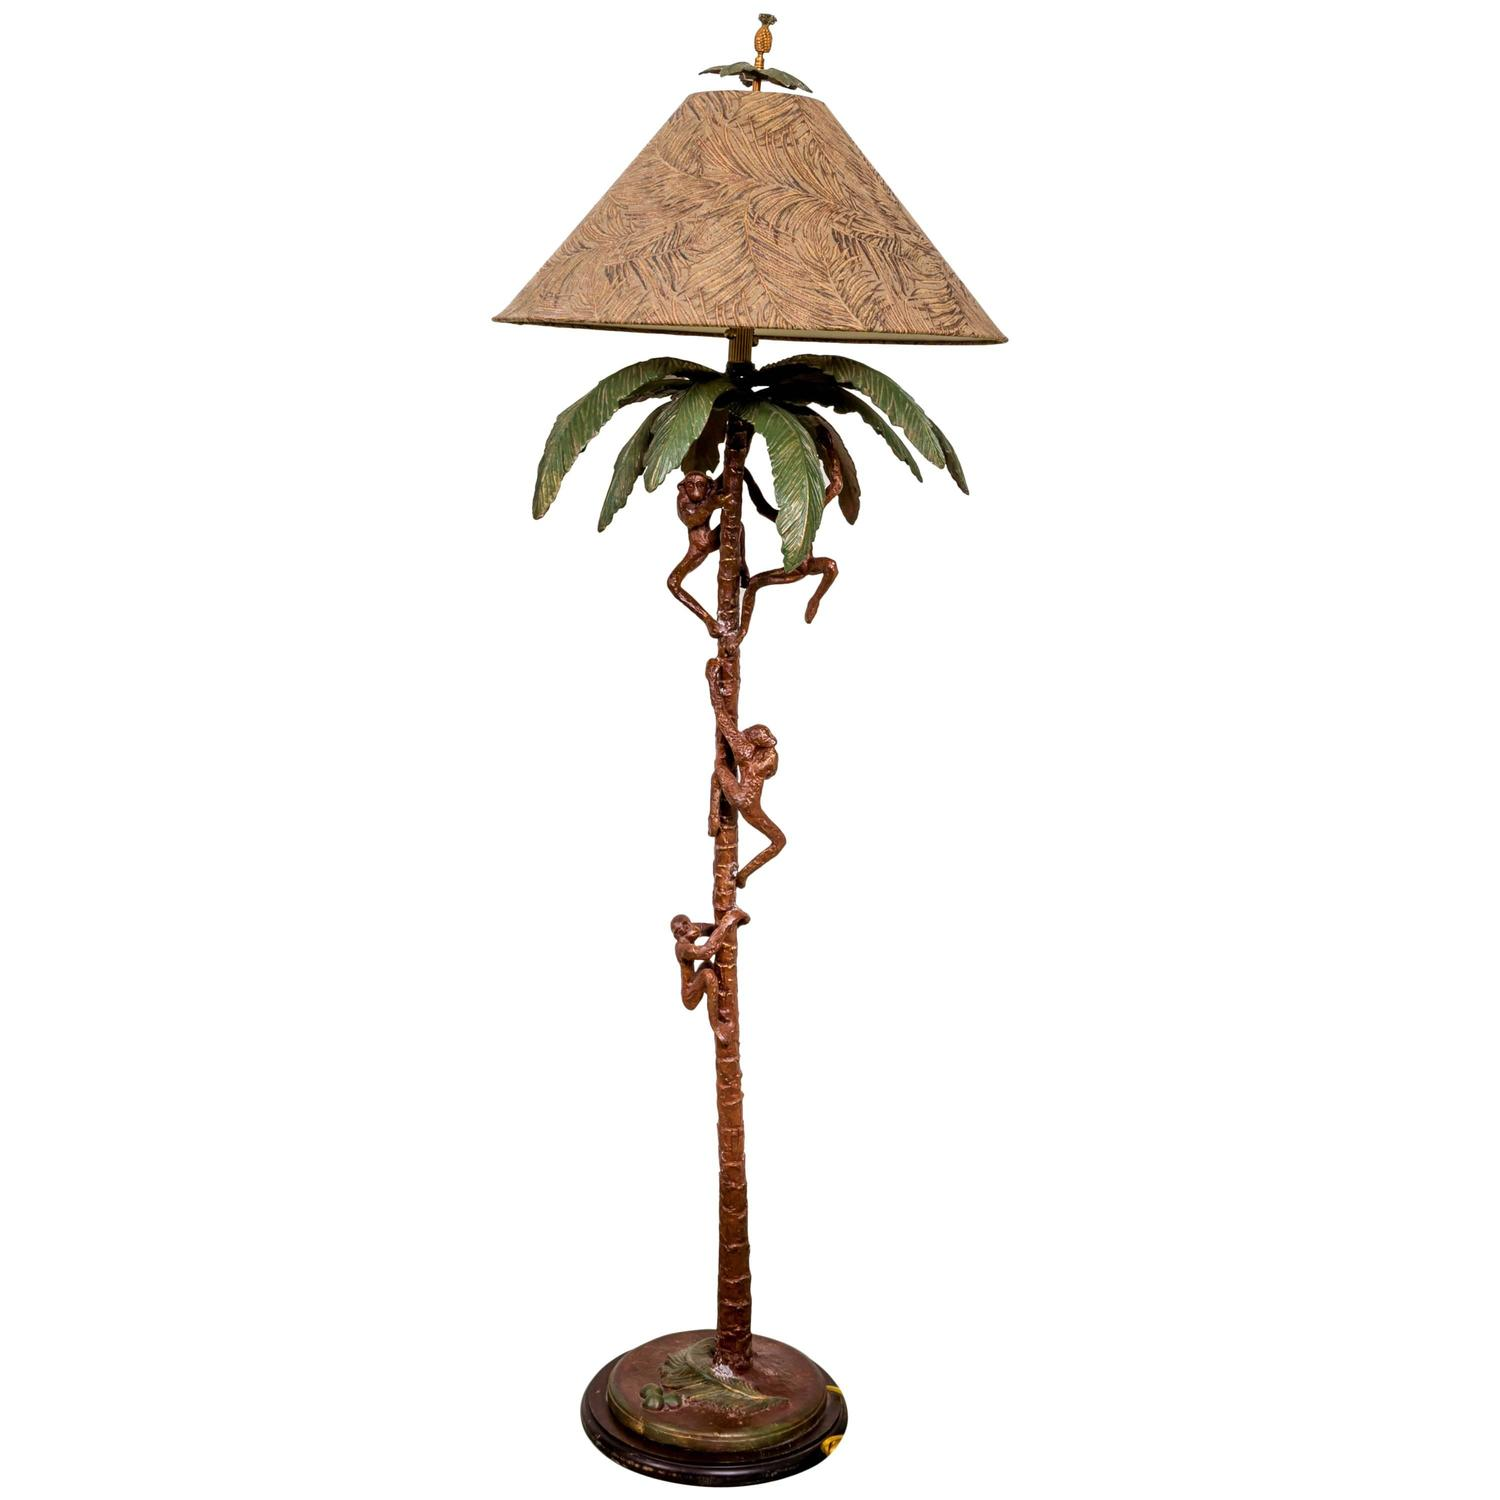 French monkey lamp - French Monkey Lamp 39